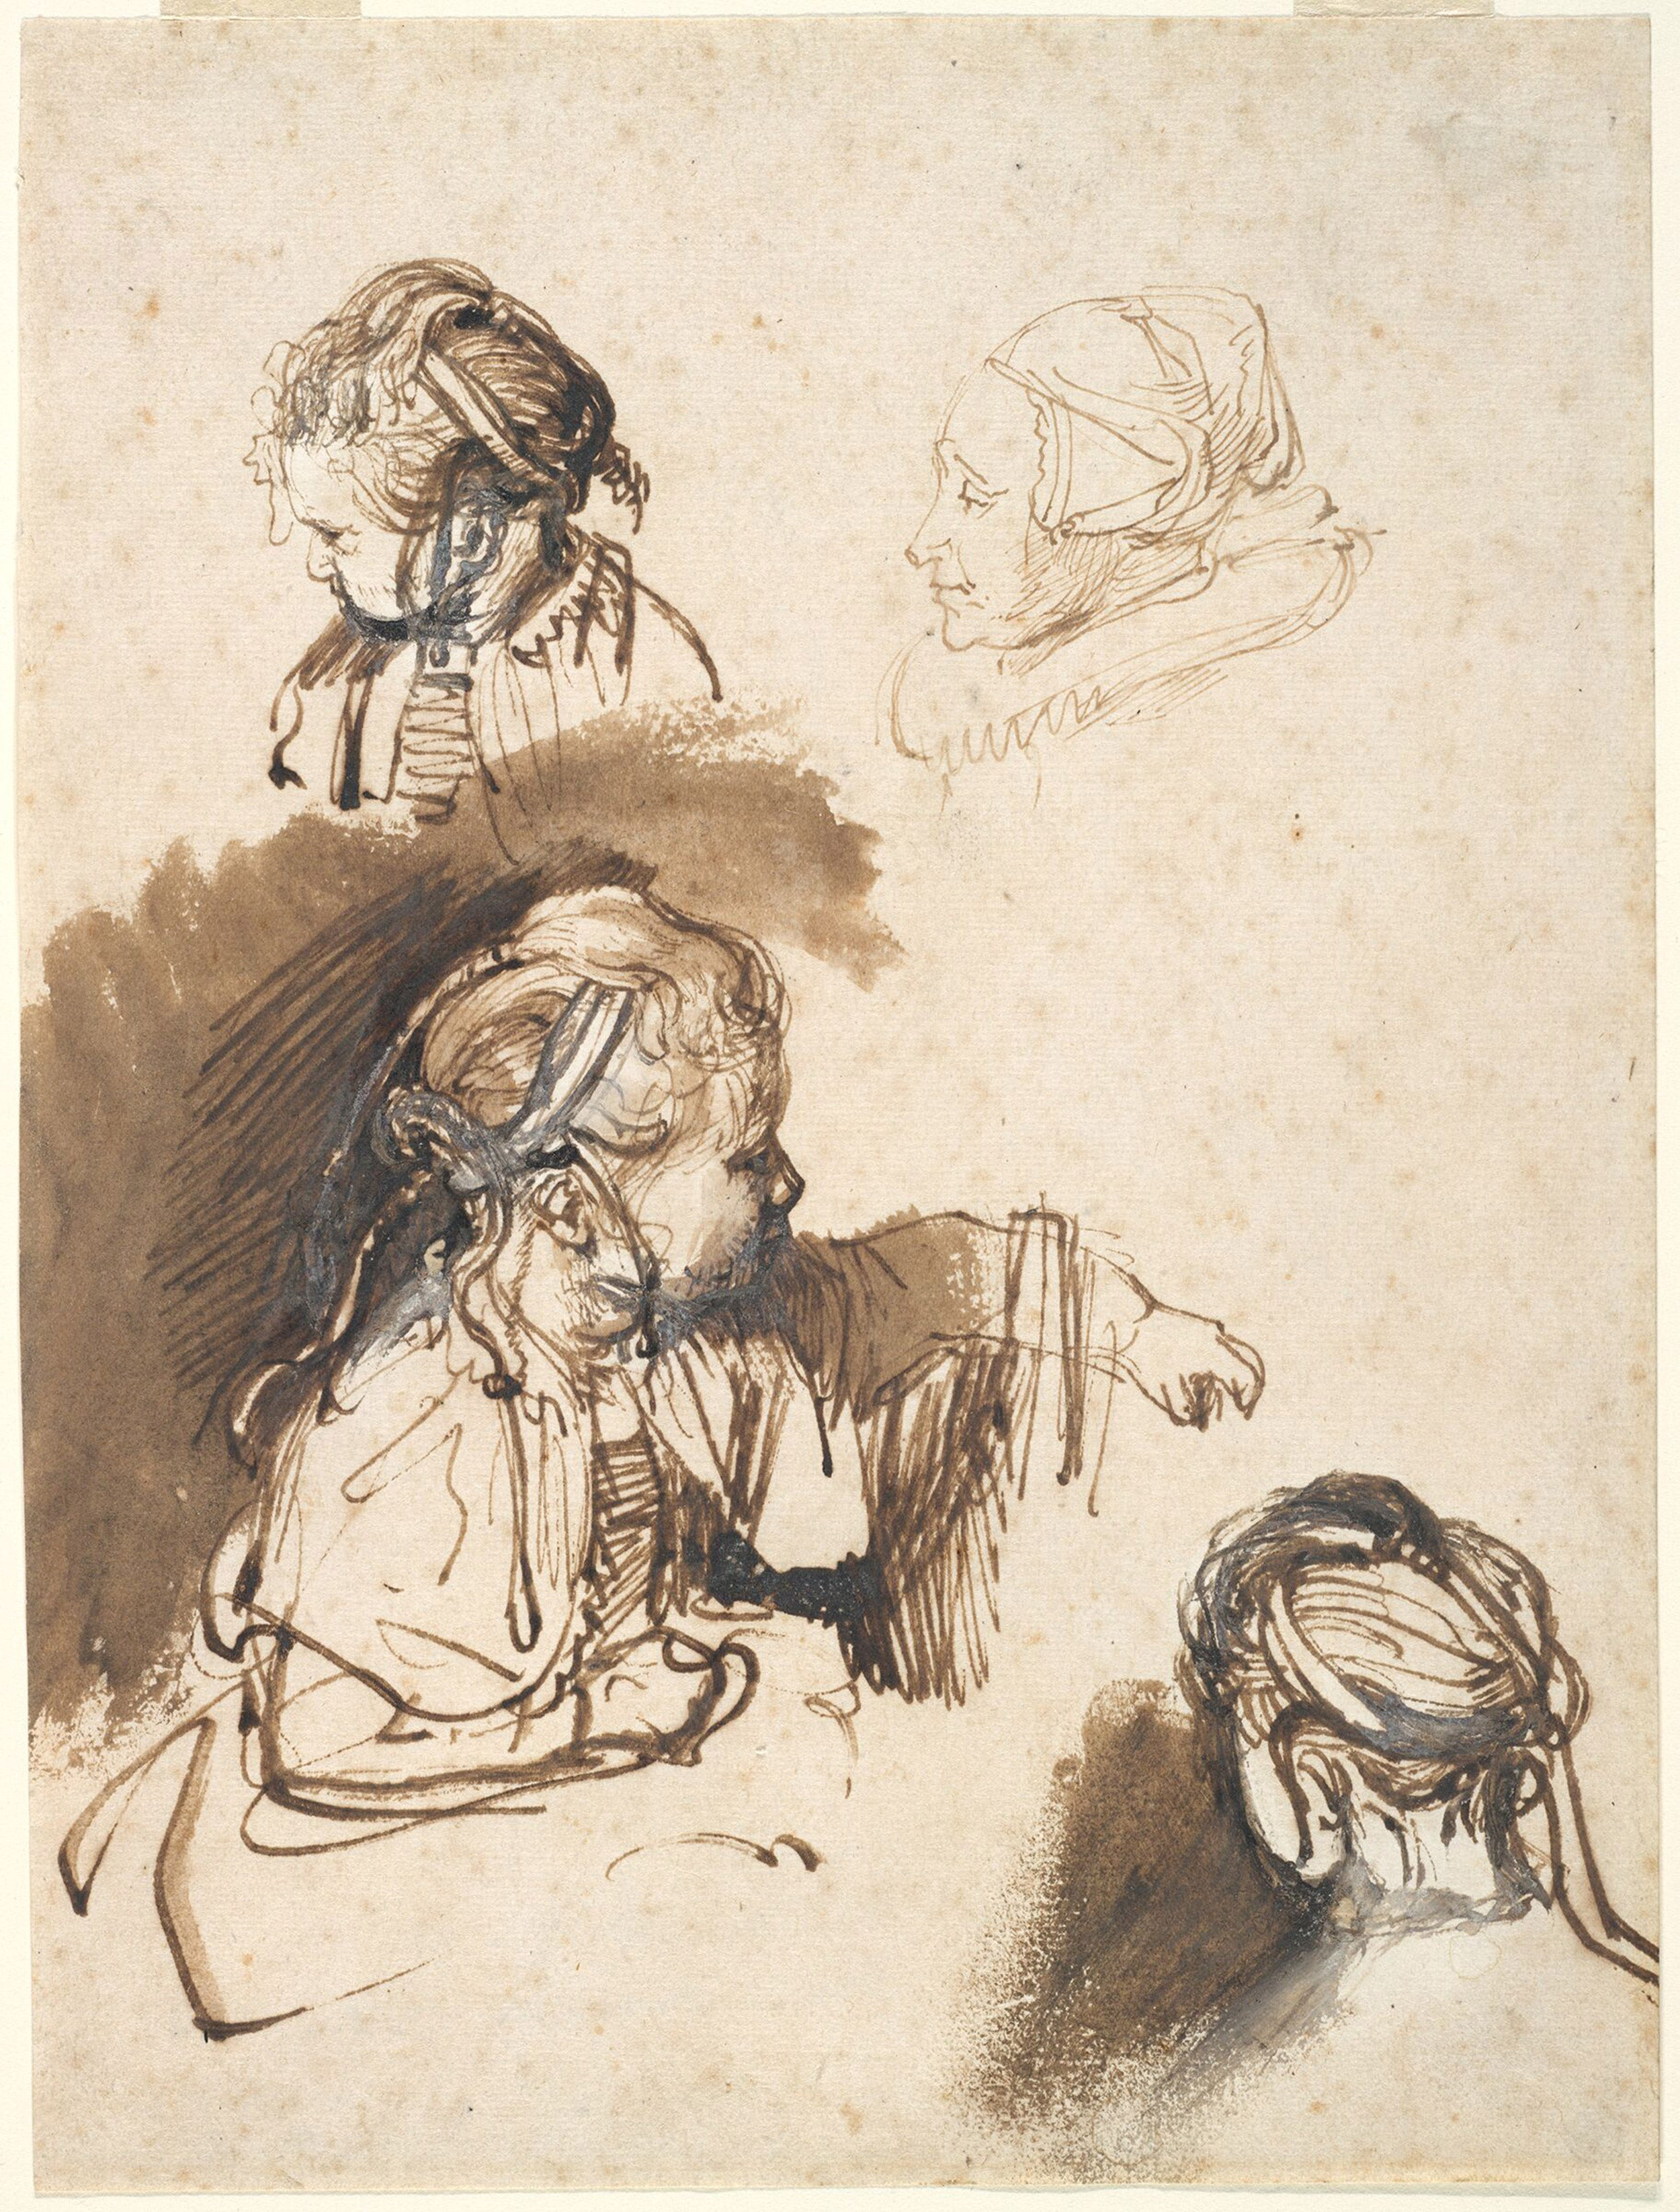 Rembrandt drawing offers a close look at artist's hand